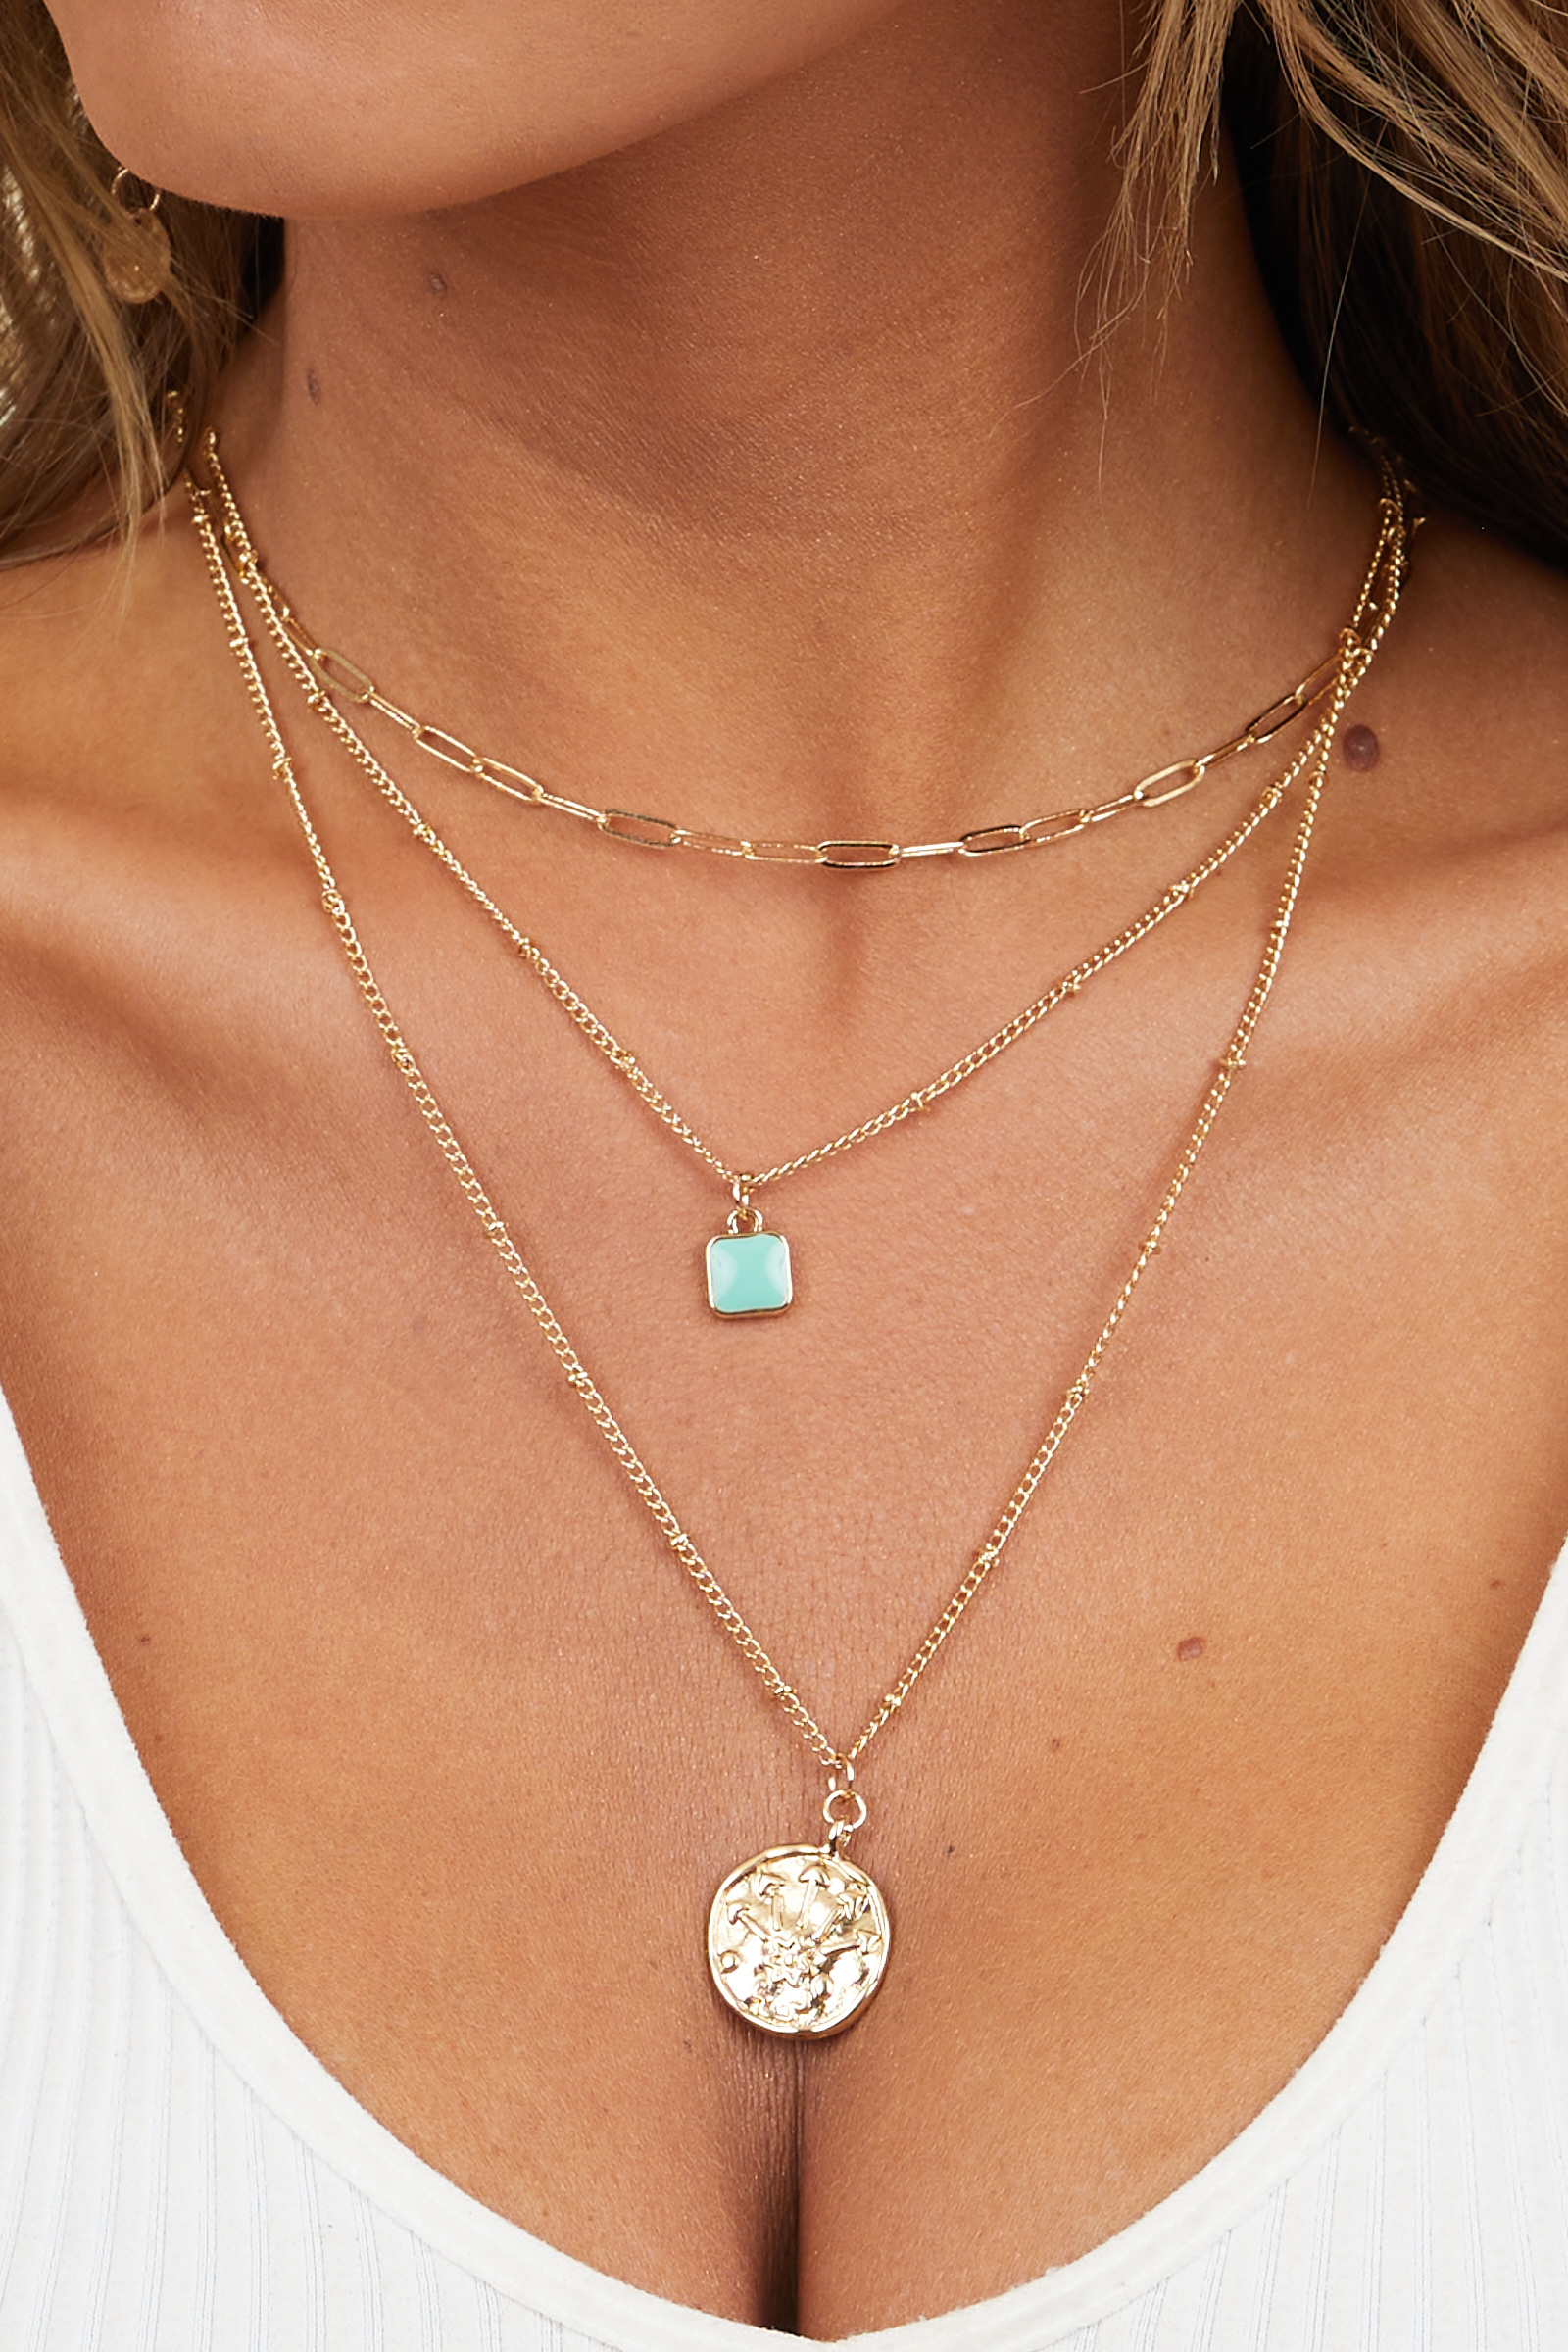 Gold Layered Necklace with Coin and Turquoise Pendant Detail